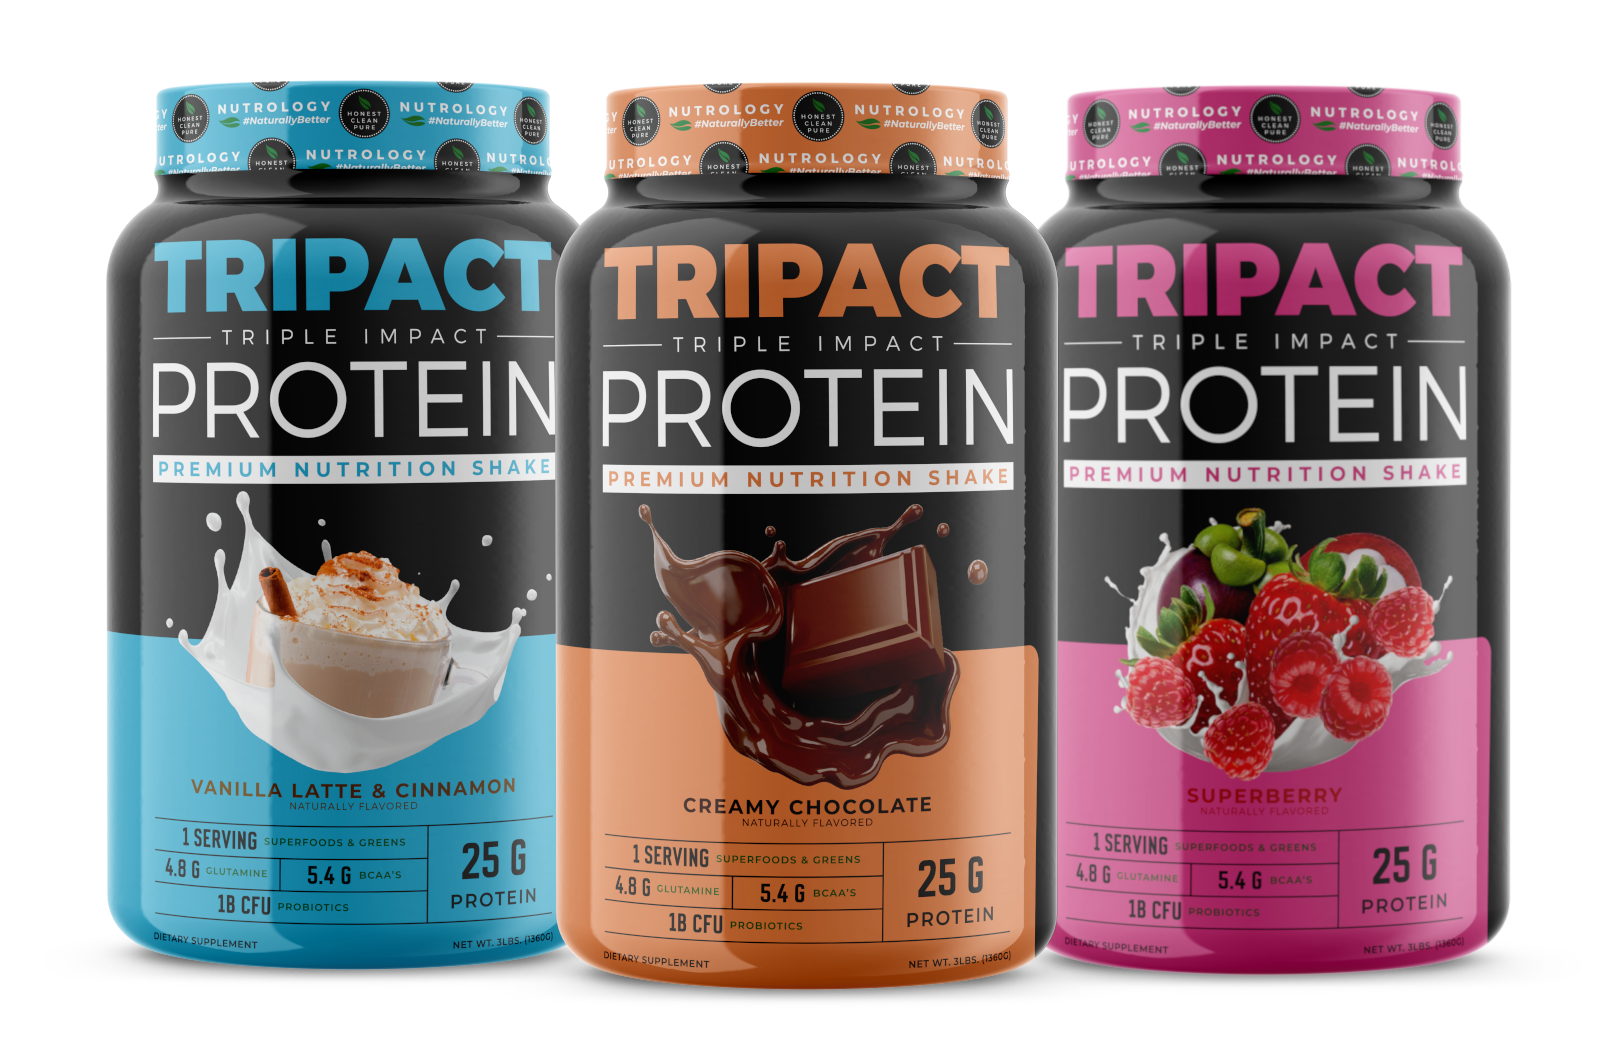 tripact protein group banner